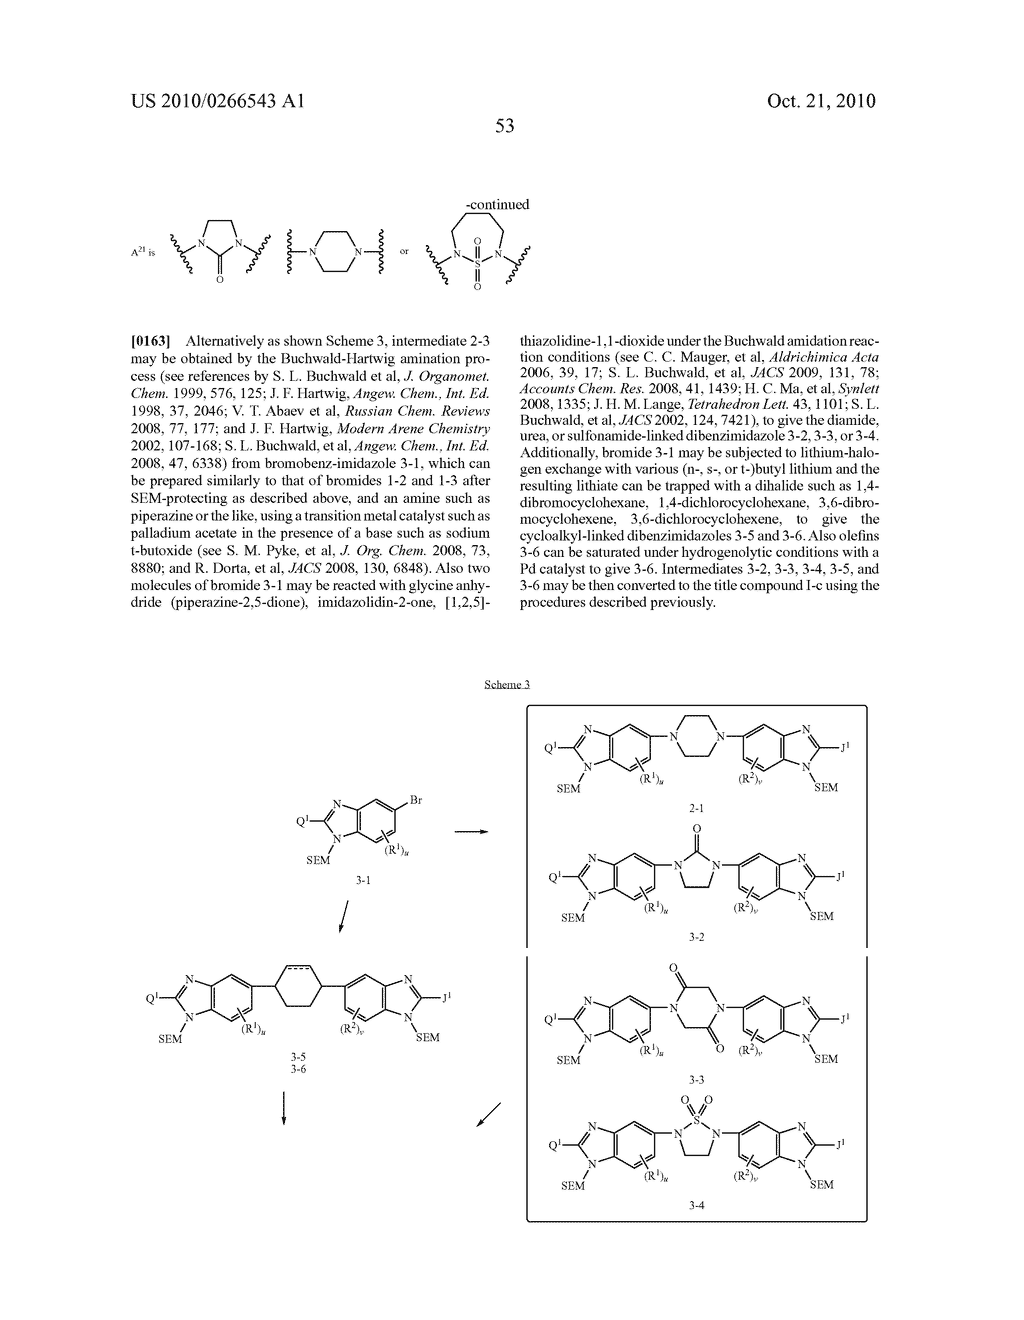 LINKED DIBENZIMIDAZOLE ANTIVIRALS - diagram, schematic, and image 54